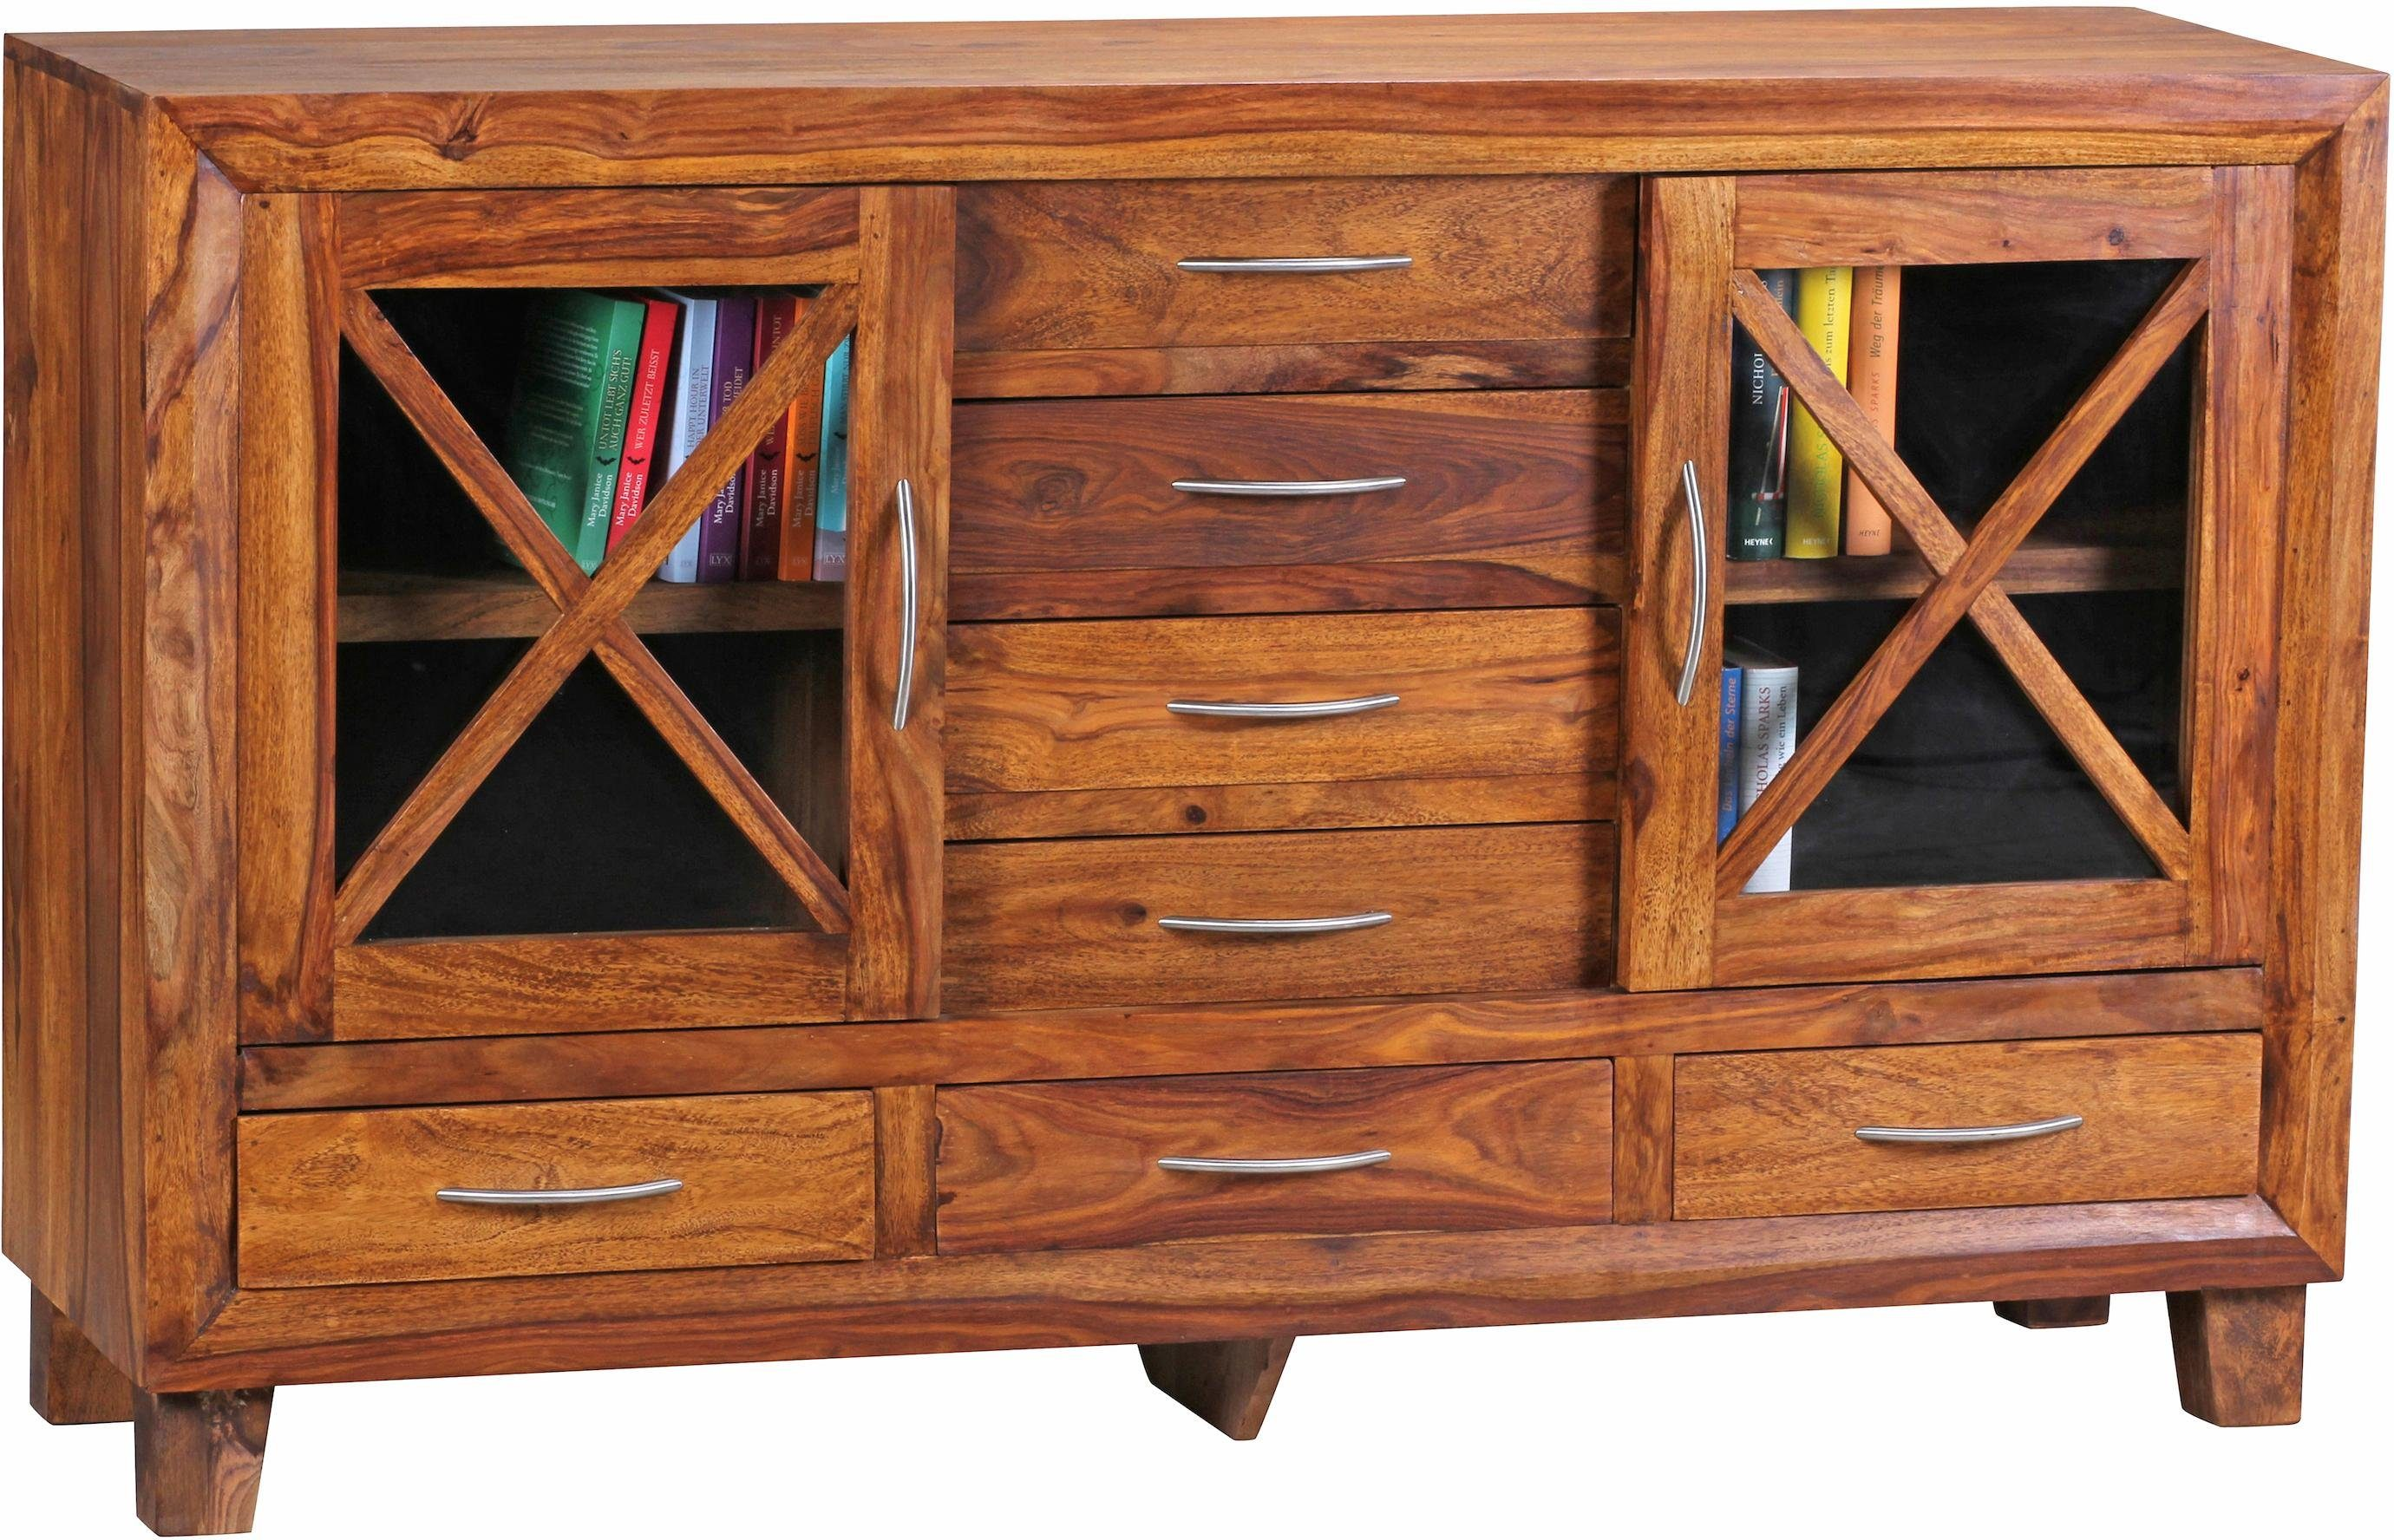 Home affaire Sideboard »Malati« 150 cm breit